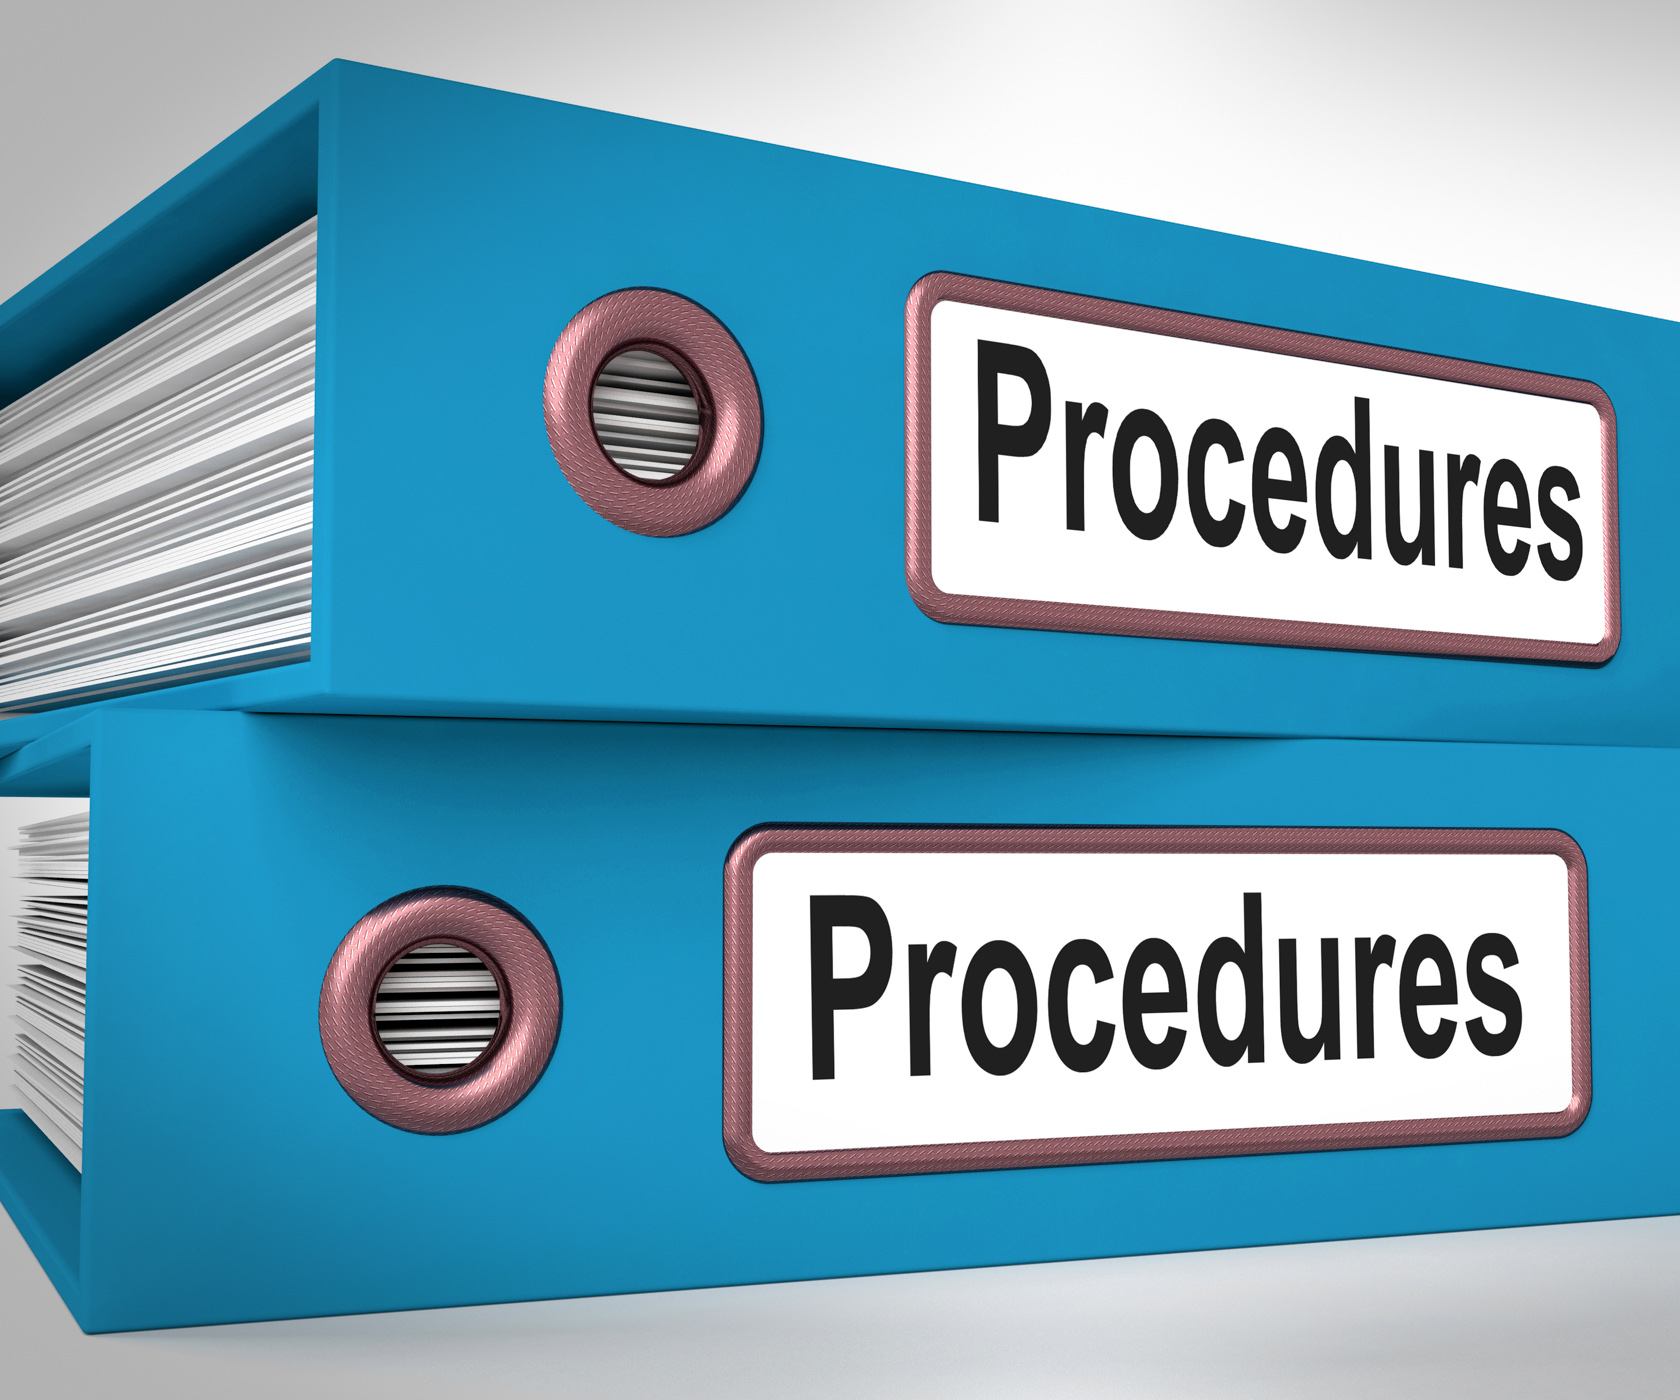 Procedures folders mean correct process and best practice photo